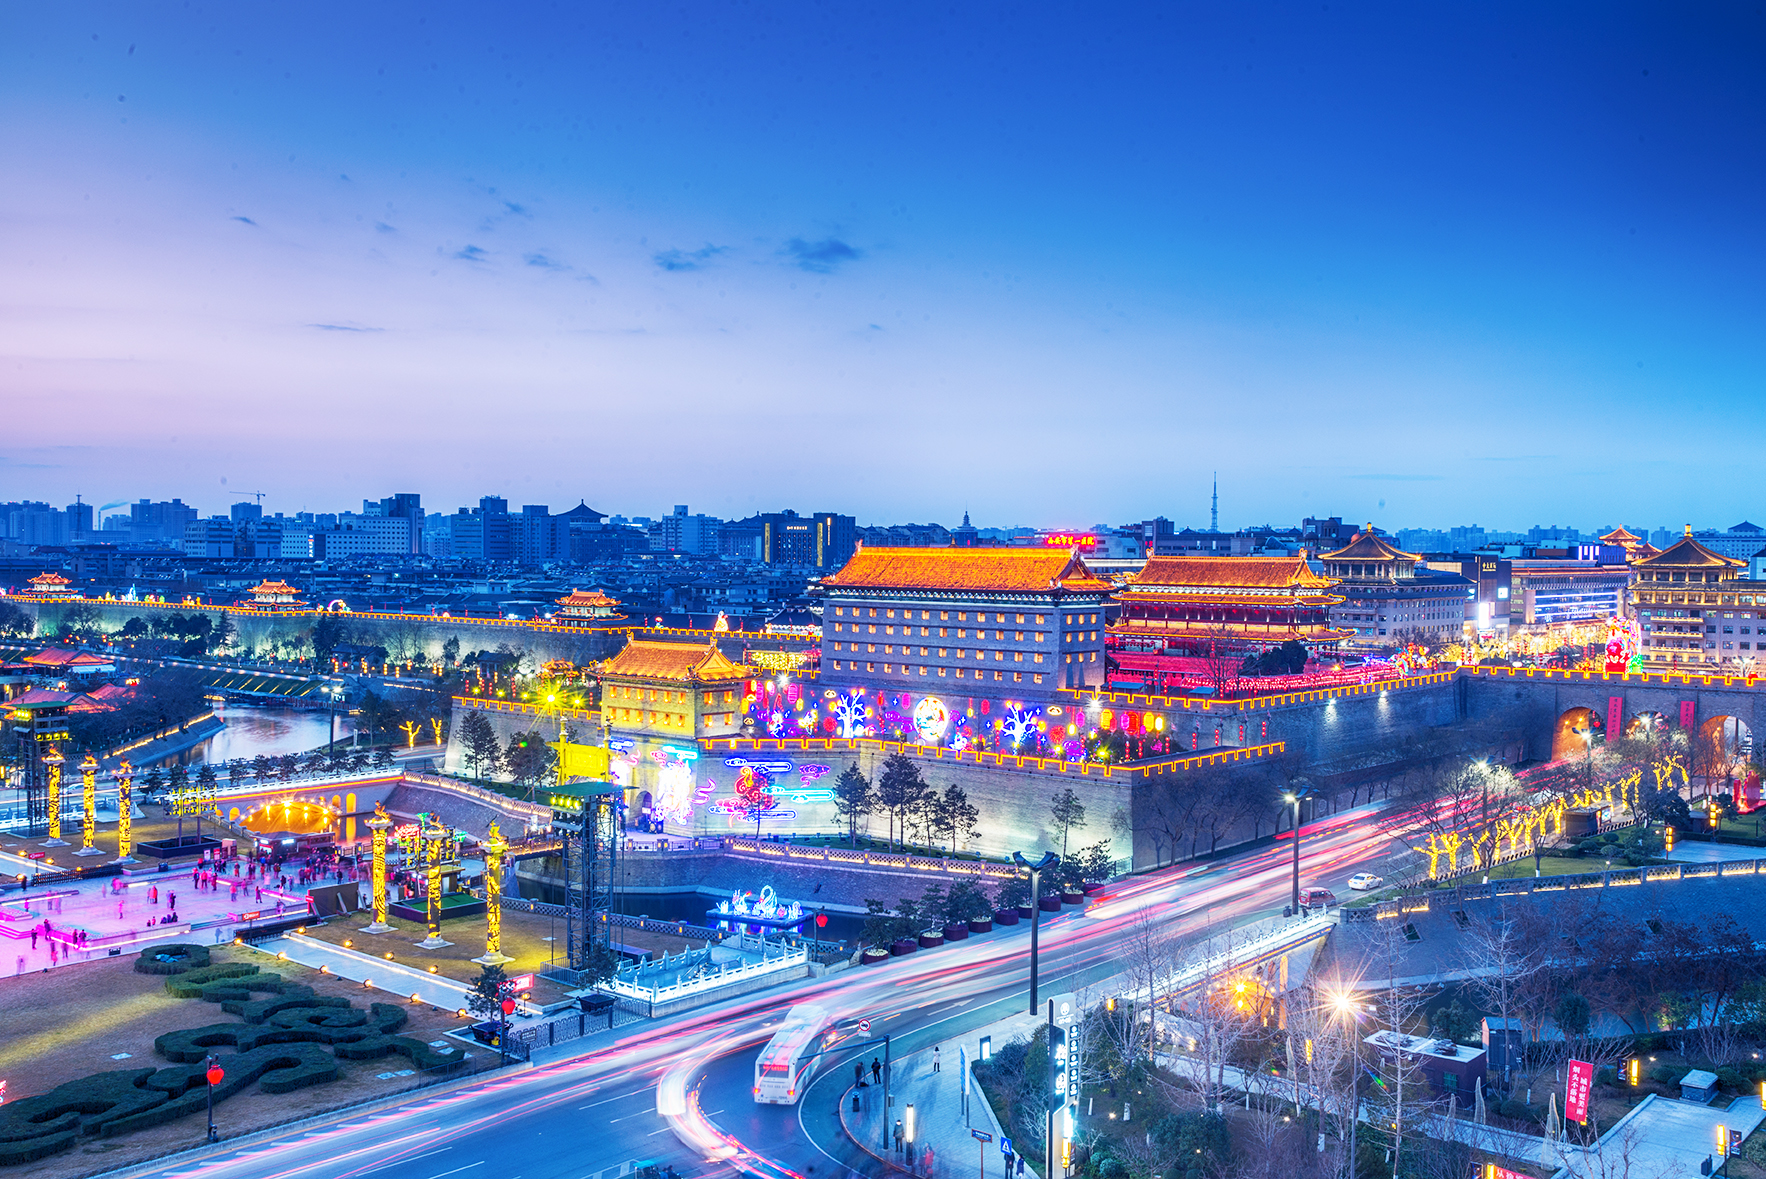 Xian Ancient Capital and Starting Point of Silk Road